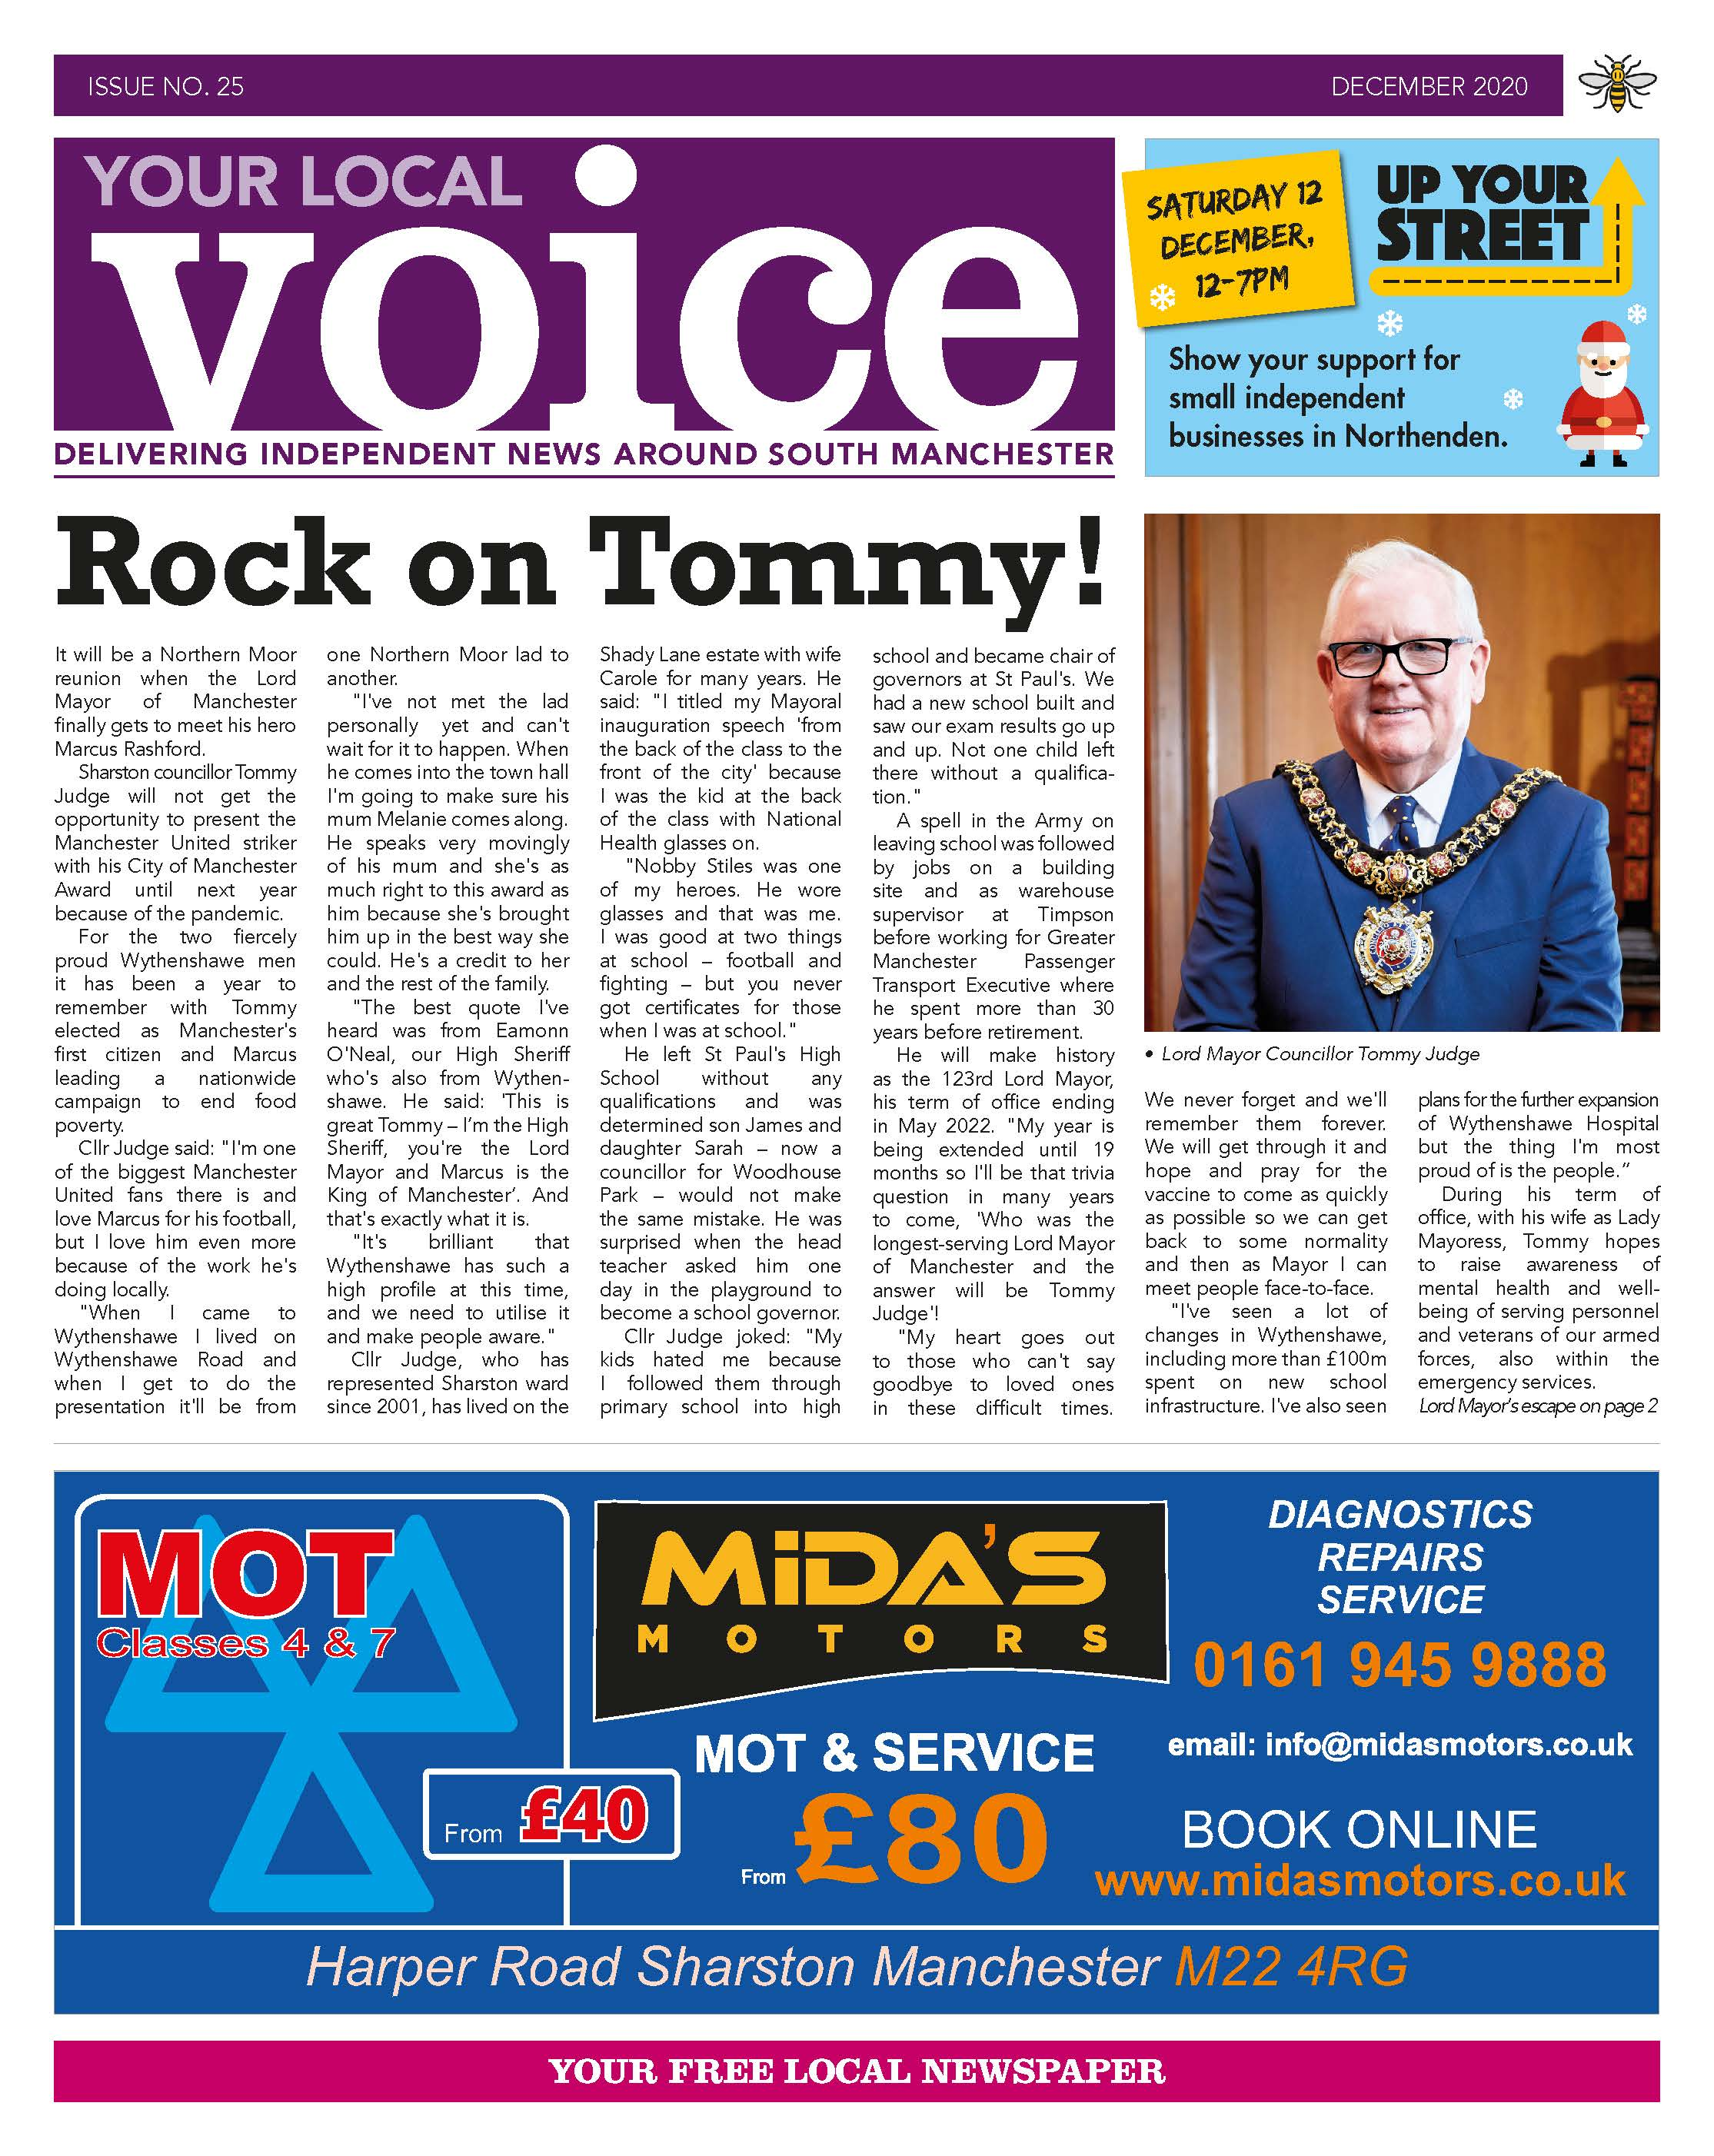 Your Local Voice newspaper issue 25